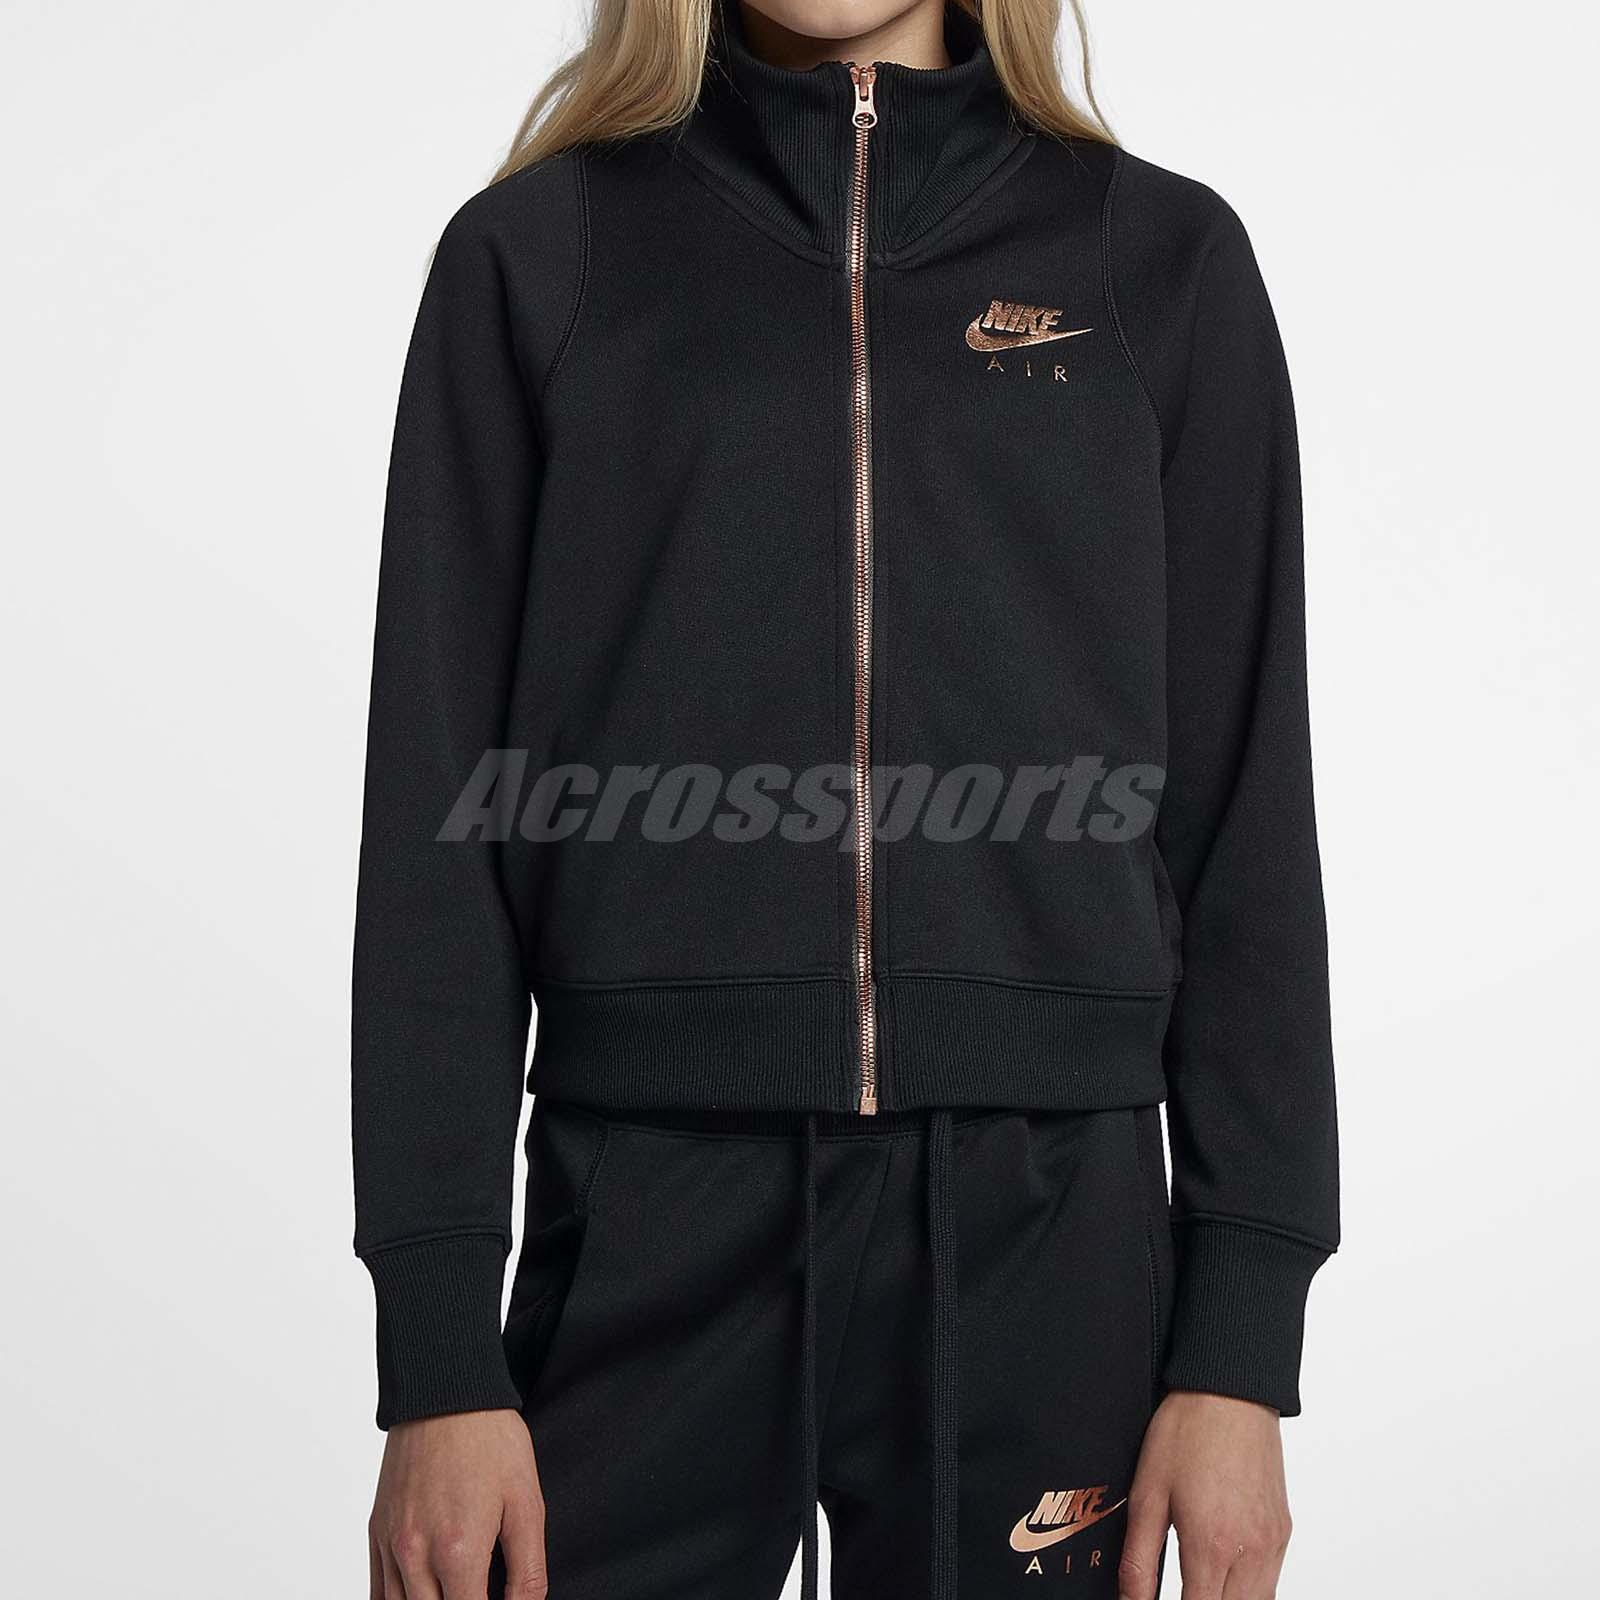 1326f7323 Details about Nike Women Air N98 Jacket Crop Top Bomber Training Workout  Sport Gold 932056-010